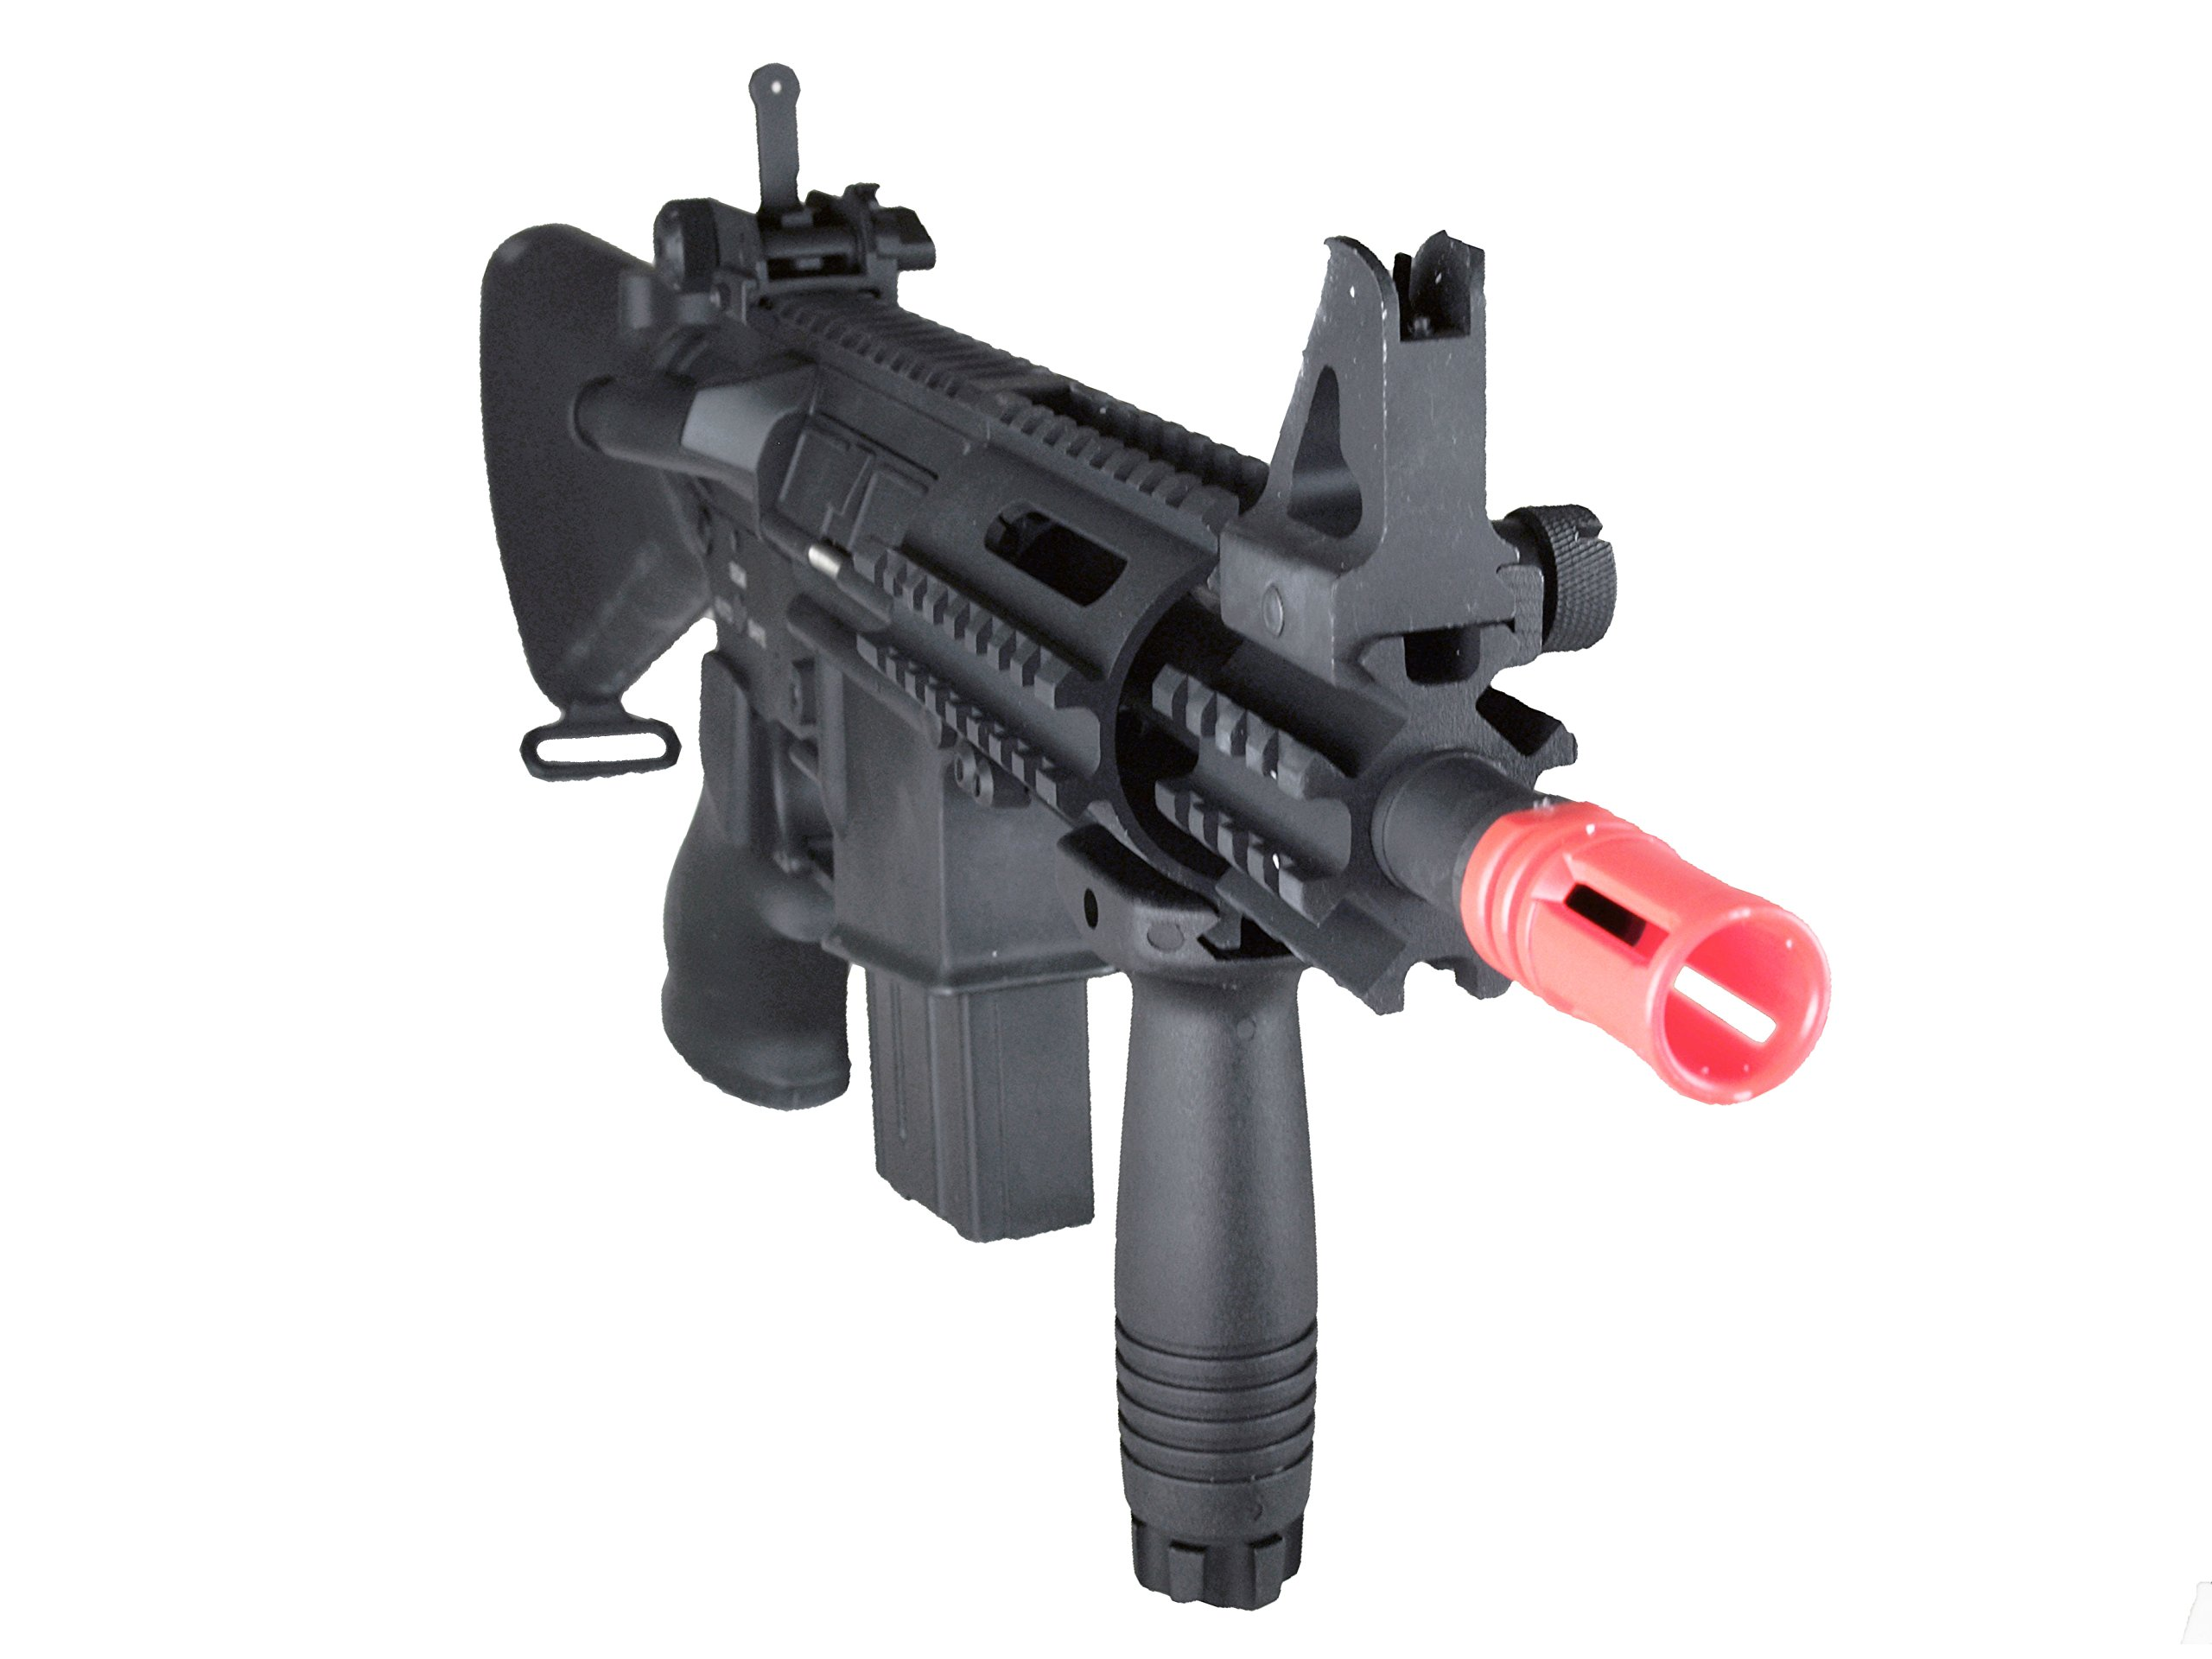 MetalTac Electric Airsoft Gun M4 CQB 01 A&K with Full Metal Body, Metal Gearbox Version 2, Full Auto AEG, Upgraded Powerful Spring 380 Fps with .20g BBs